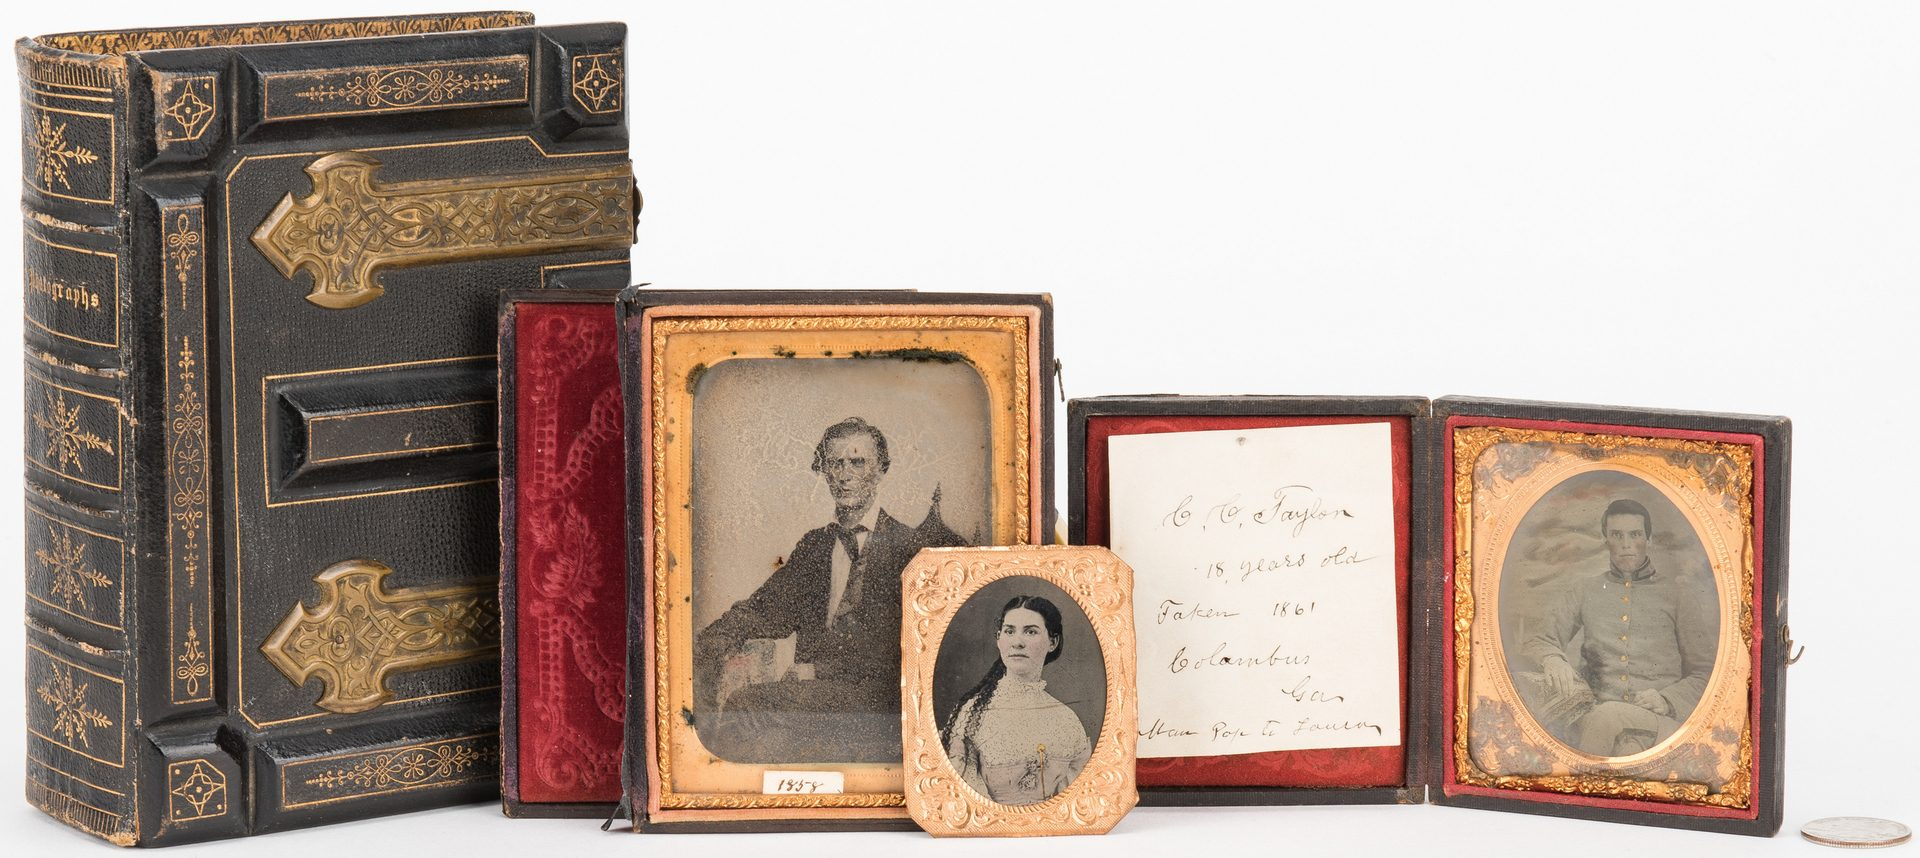 Lot 262: Civil War Tintype & Archive, C. C. Taylor – Columbus GA